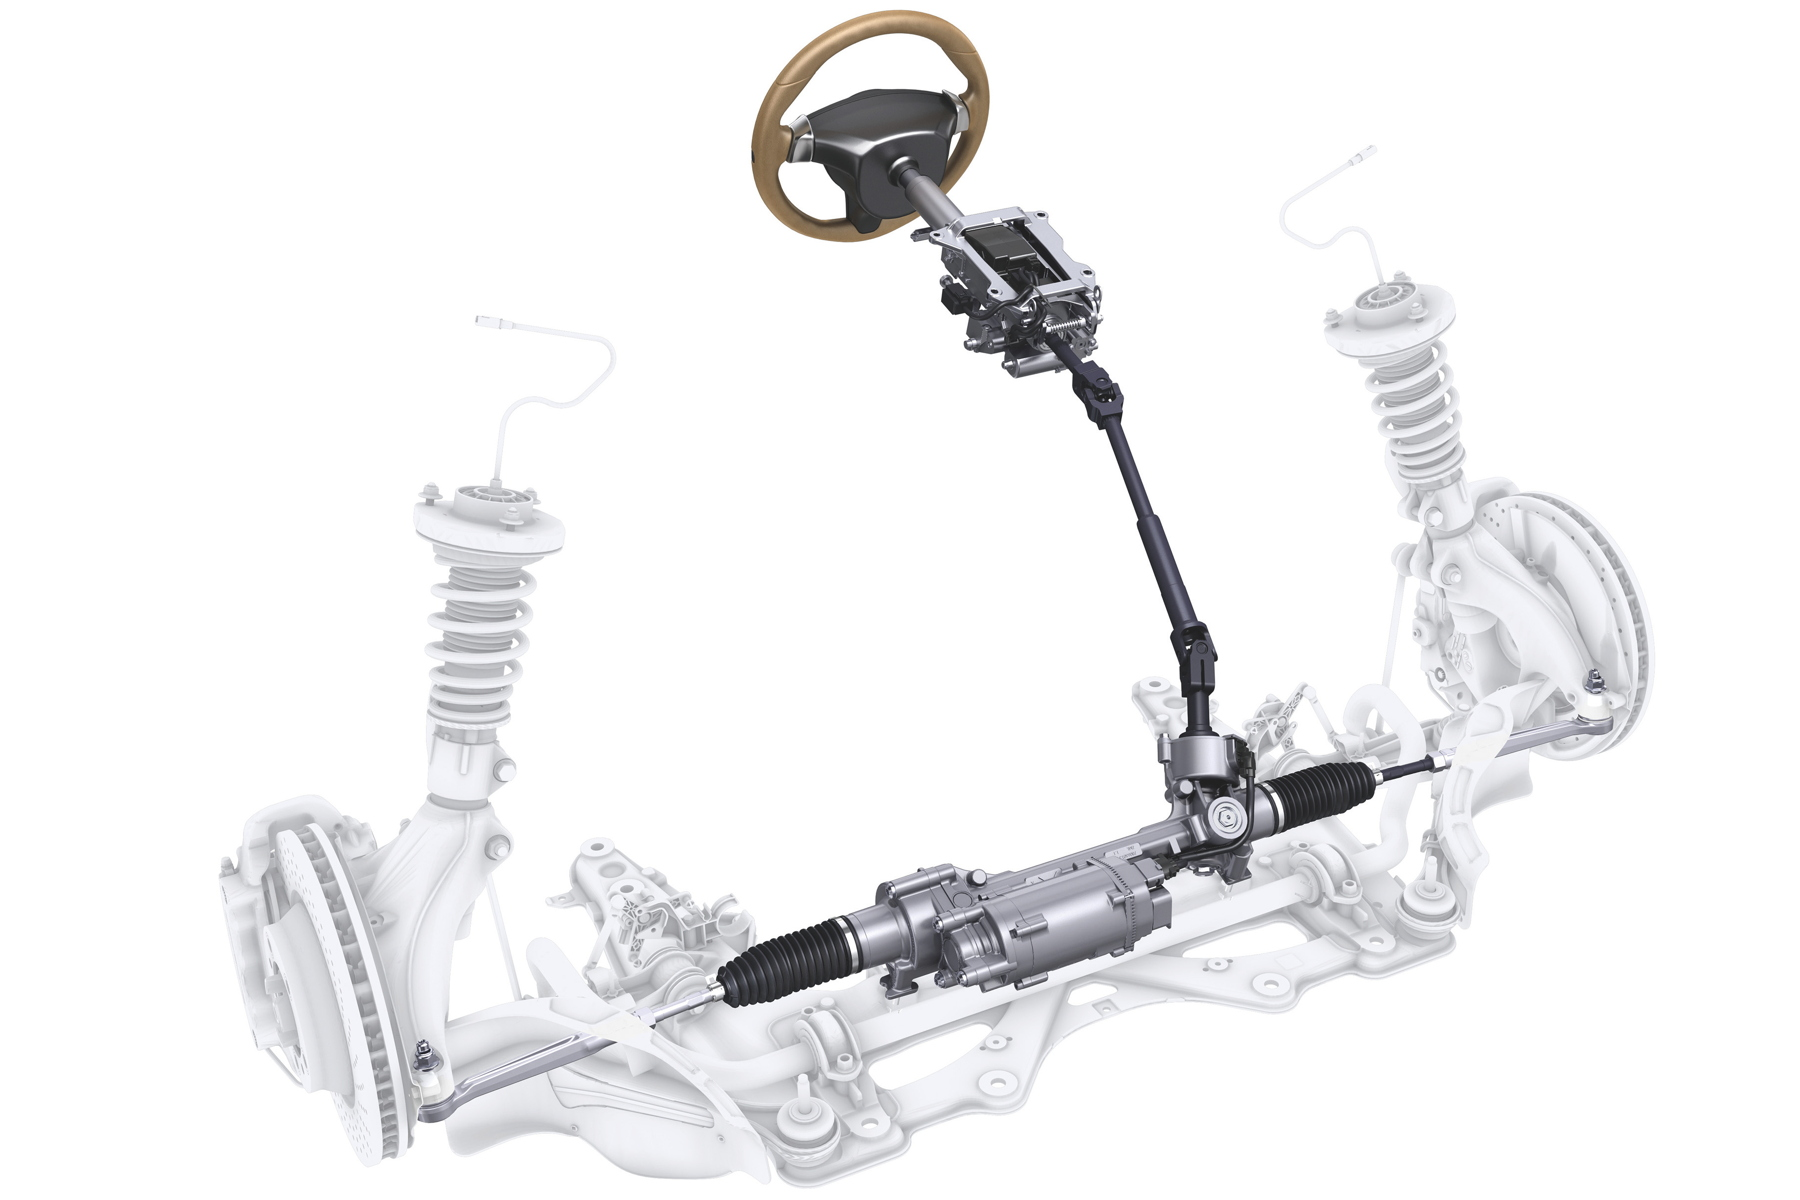 Technology explained: Electrical power-assisted steering